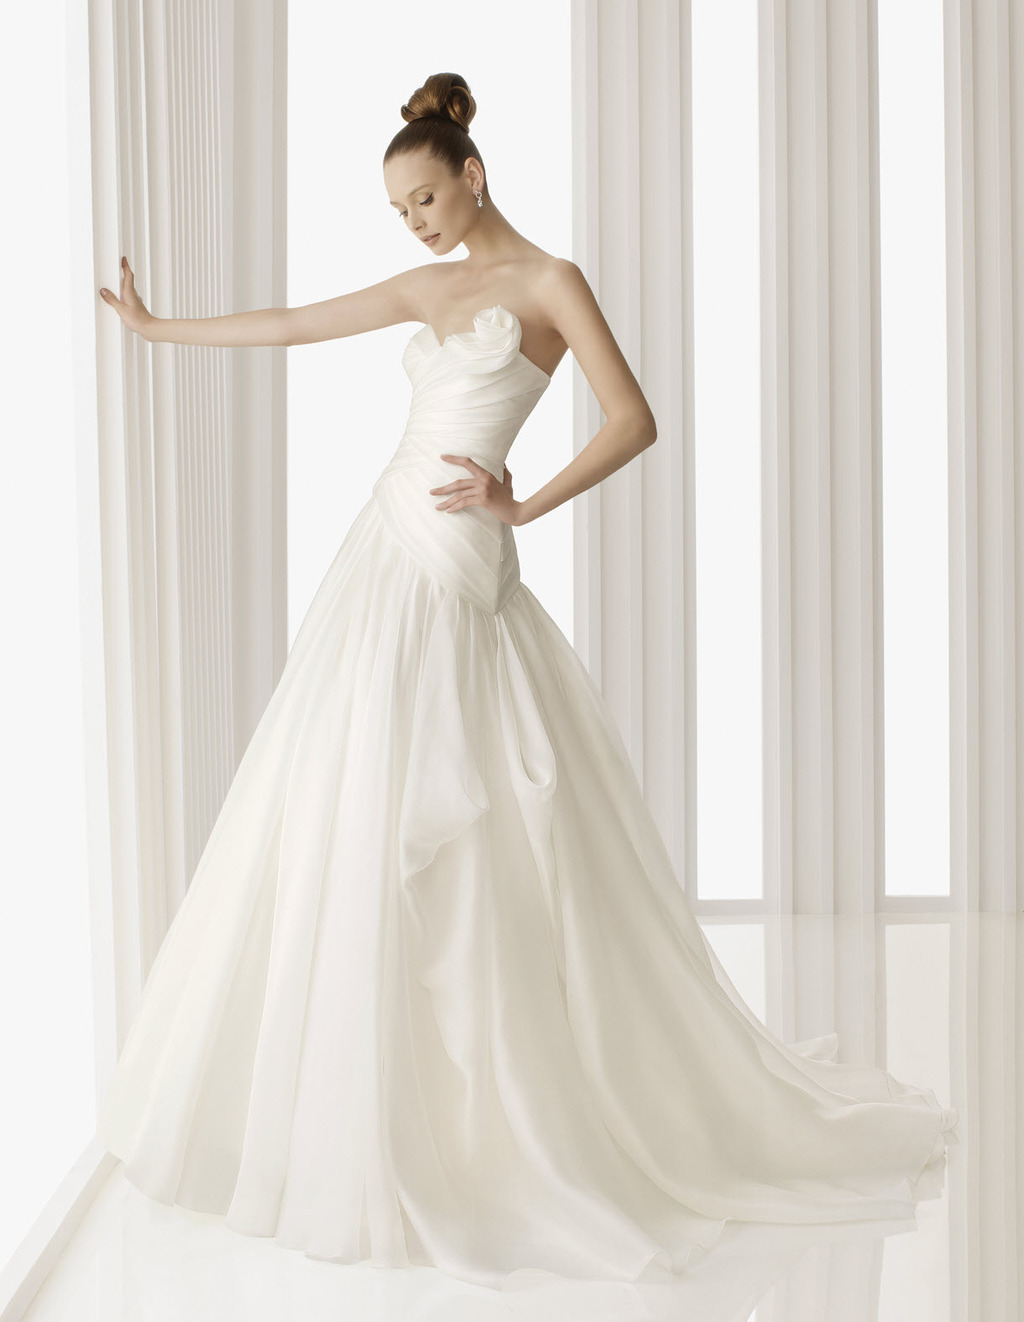 Alessia-spring-2012-wedding-dress-rosa-clara-bridal-gowns-classic-ivory-strapless-a-line.full